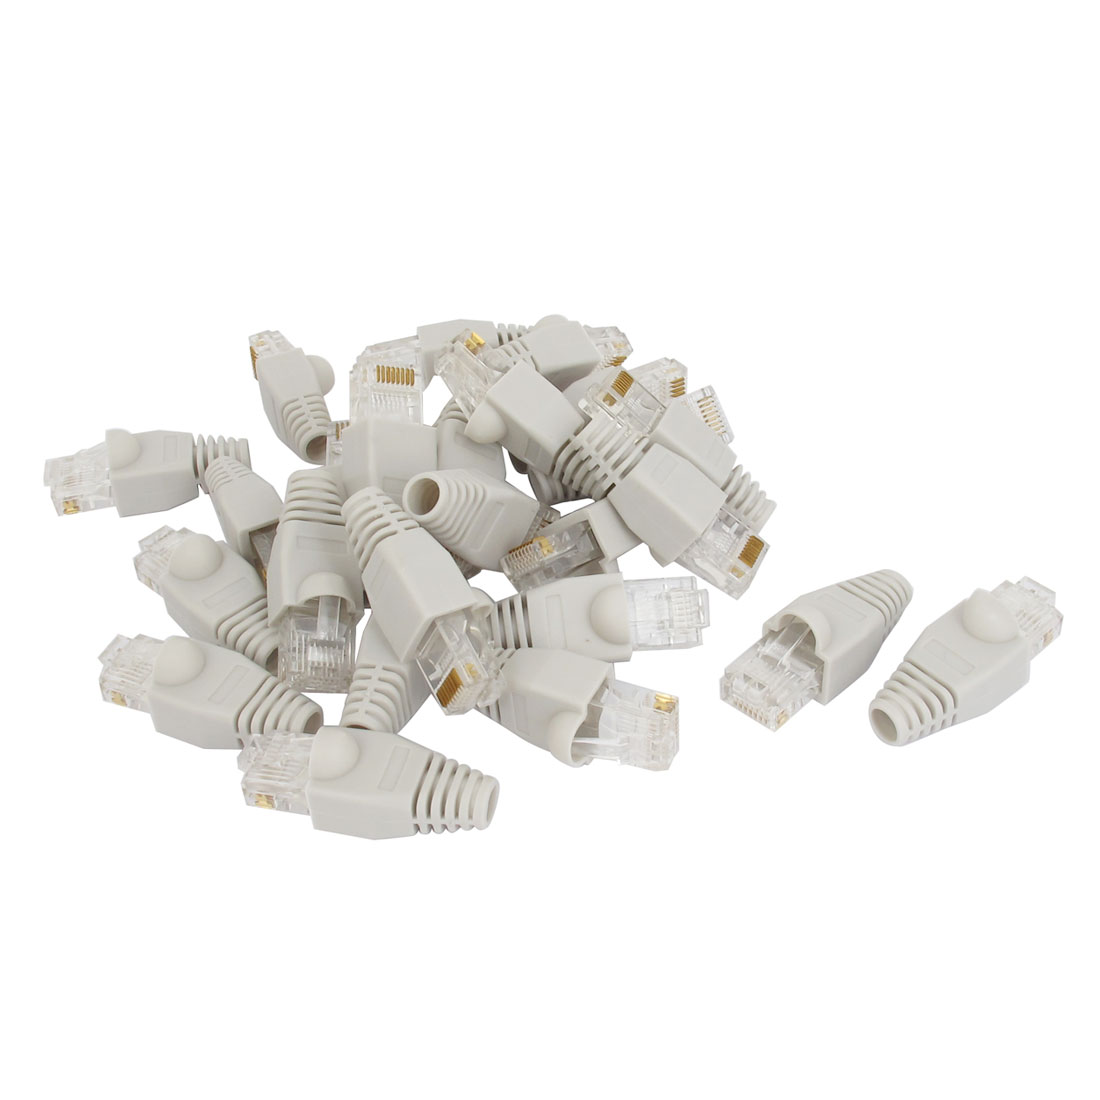 Network Modular Cable Lan RJ45 8P8C Connector End Gray 26pcs